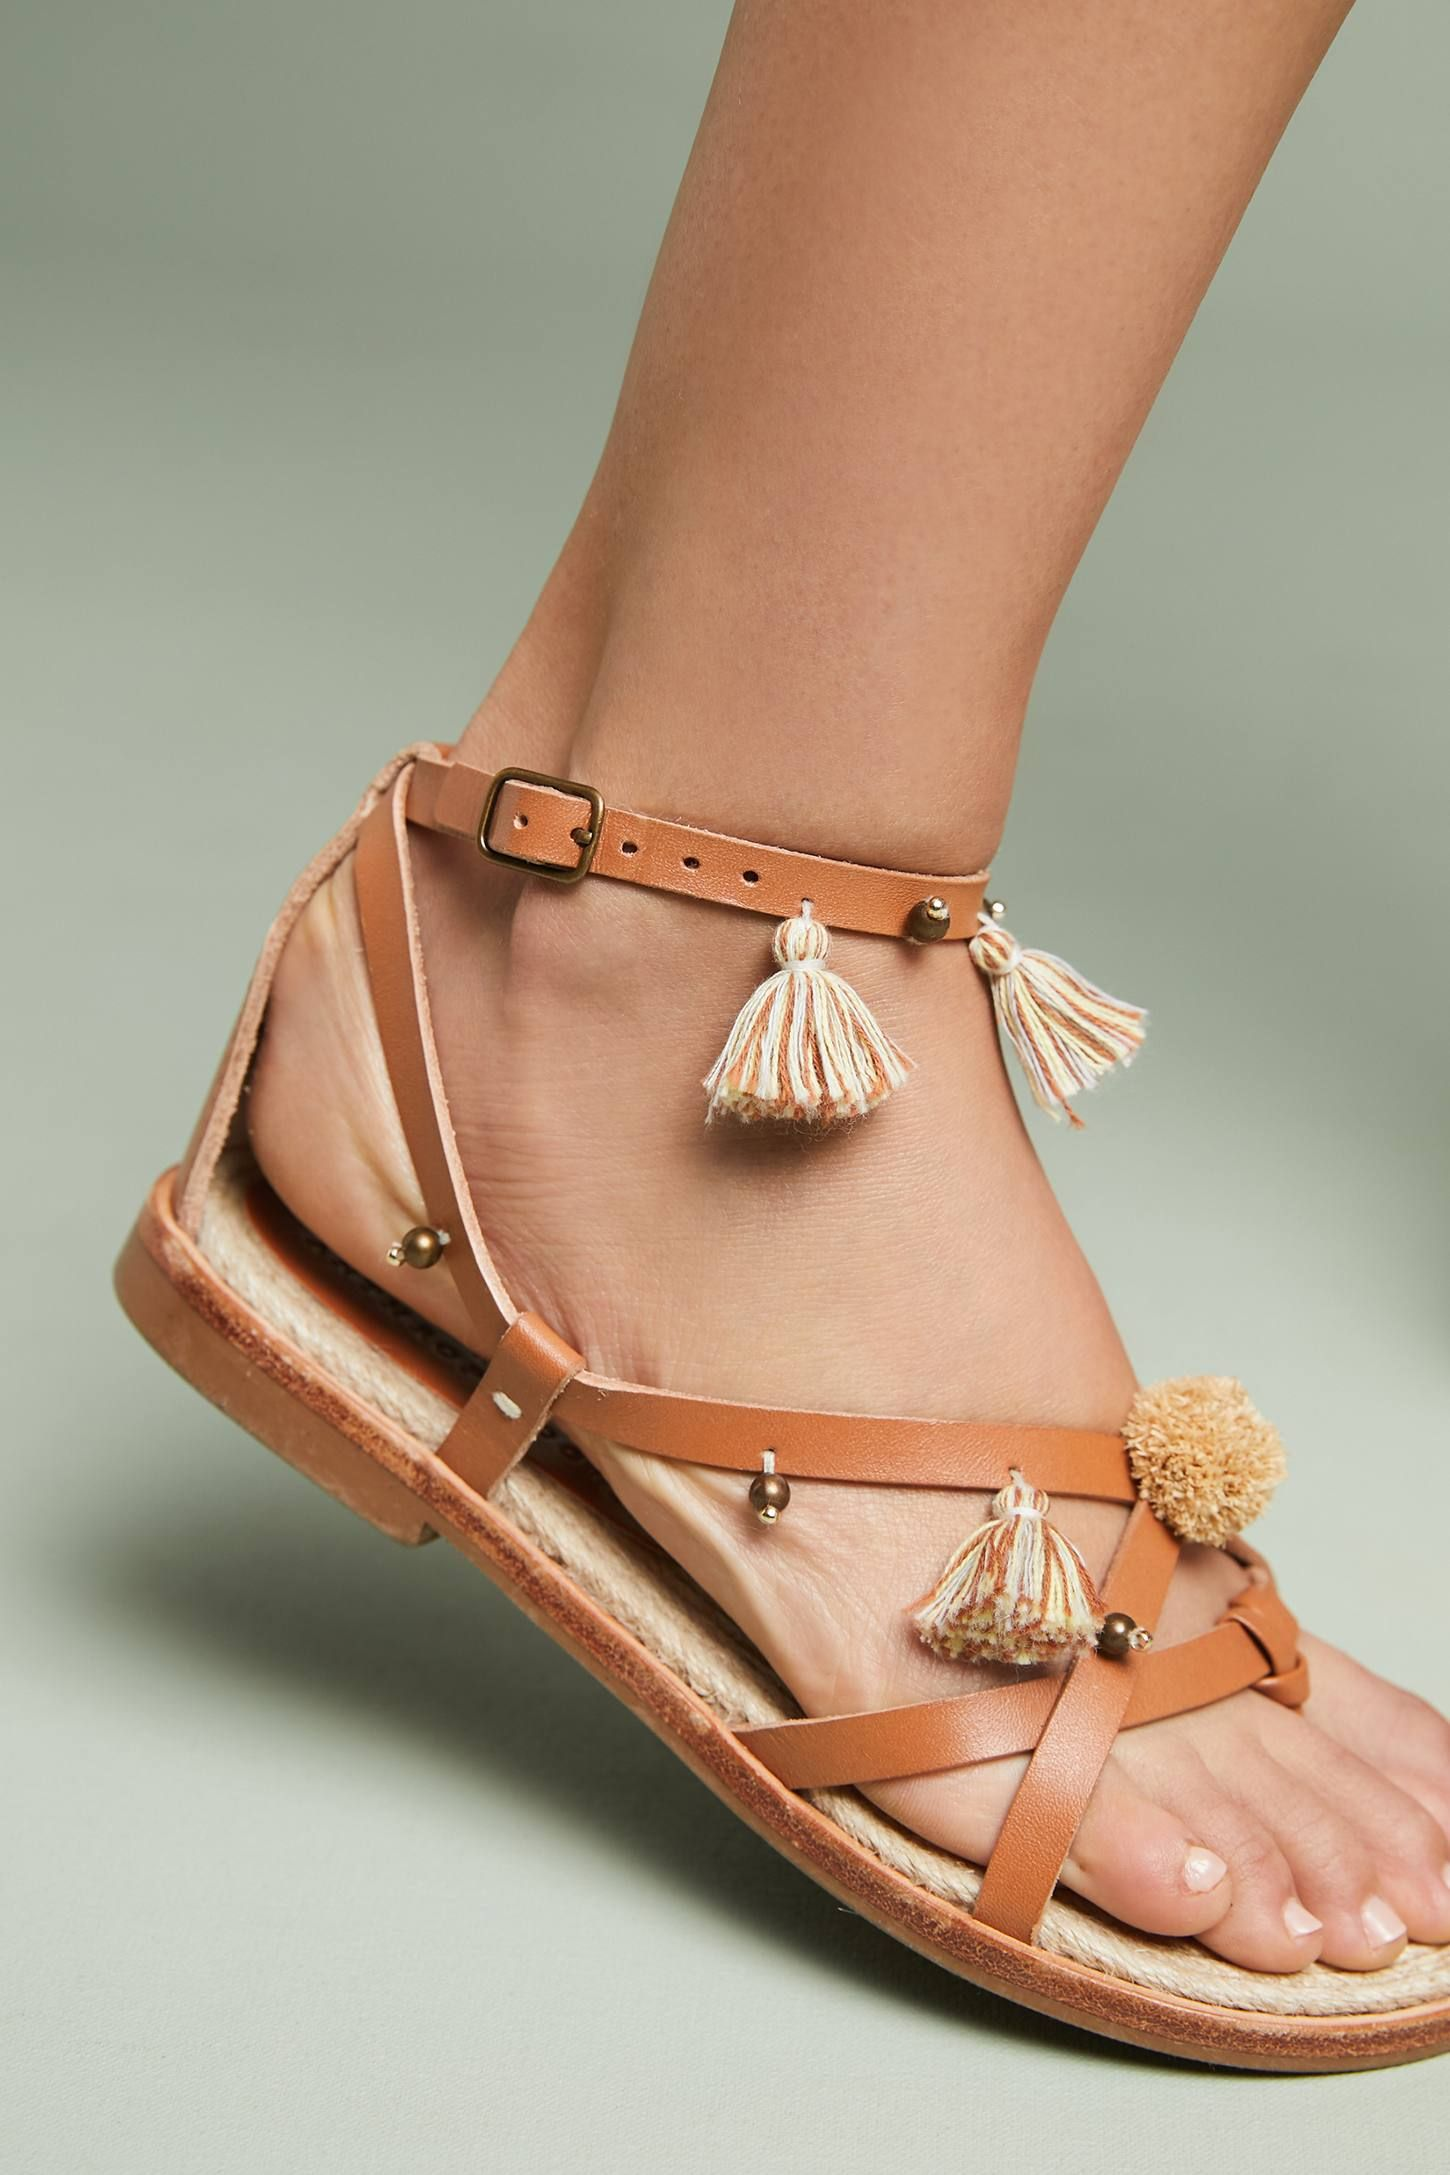 47b6fe9b440 Soludos x Anthropologie Panarea Leather Tasseled Sandals at Anthropologie.